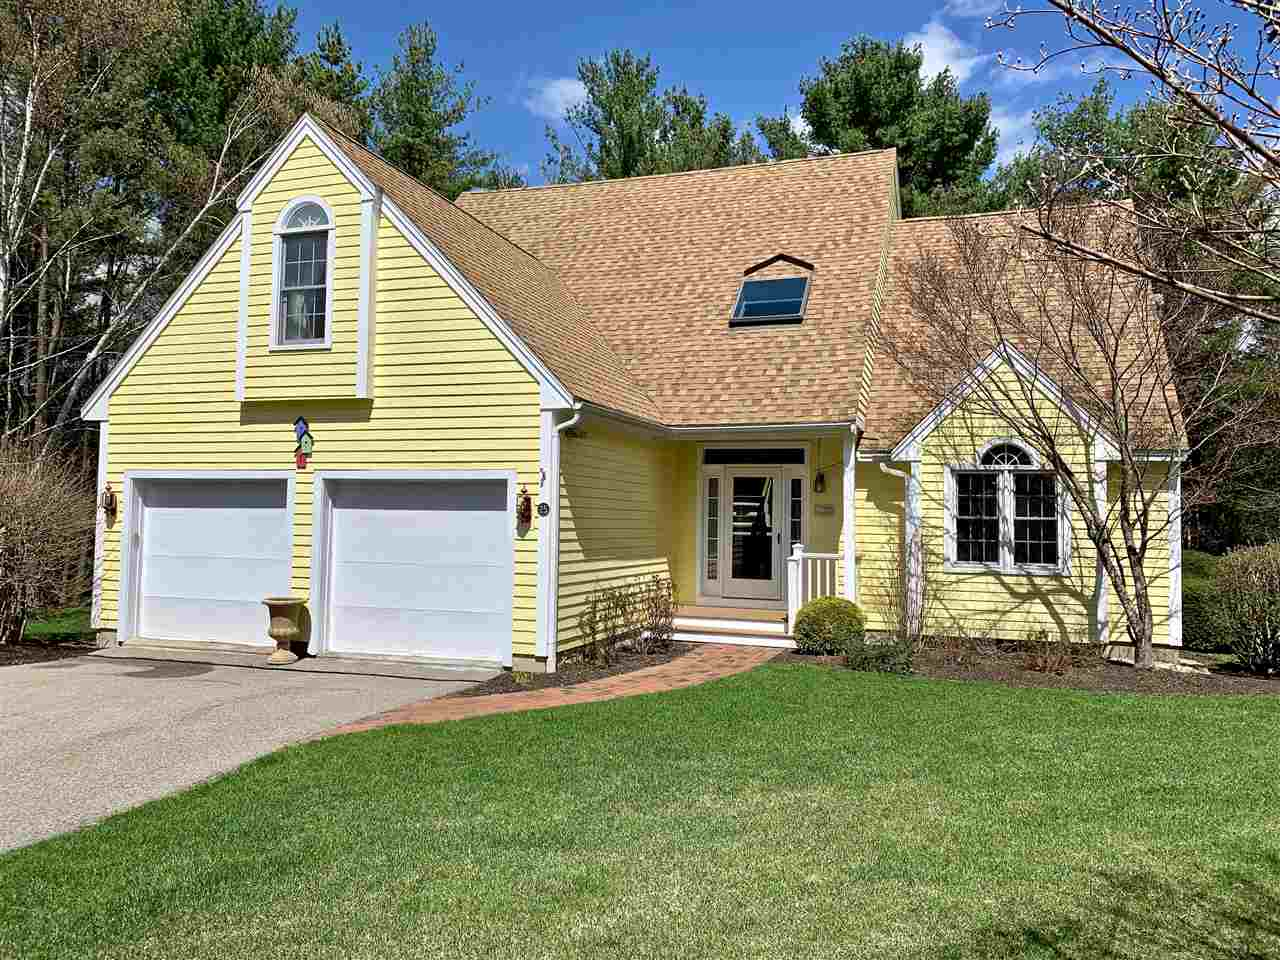 Mike McLaughlin - Buyer's Brokers of the Seacoast - Realtor in